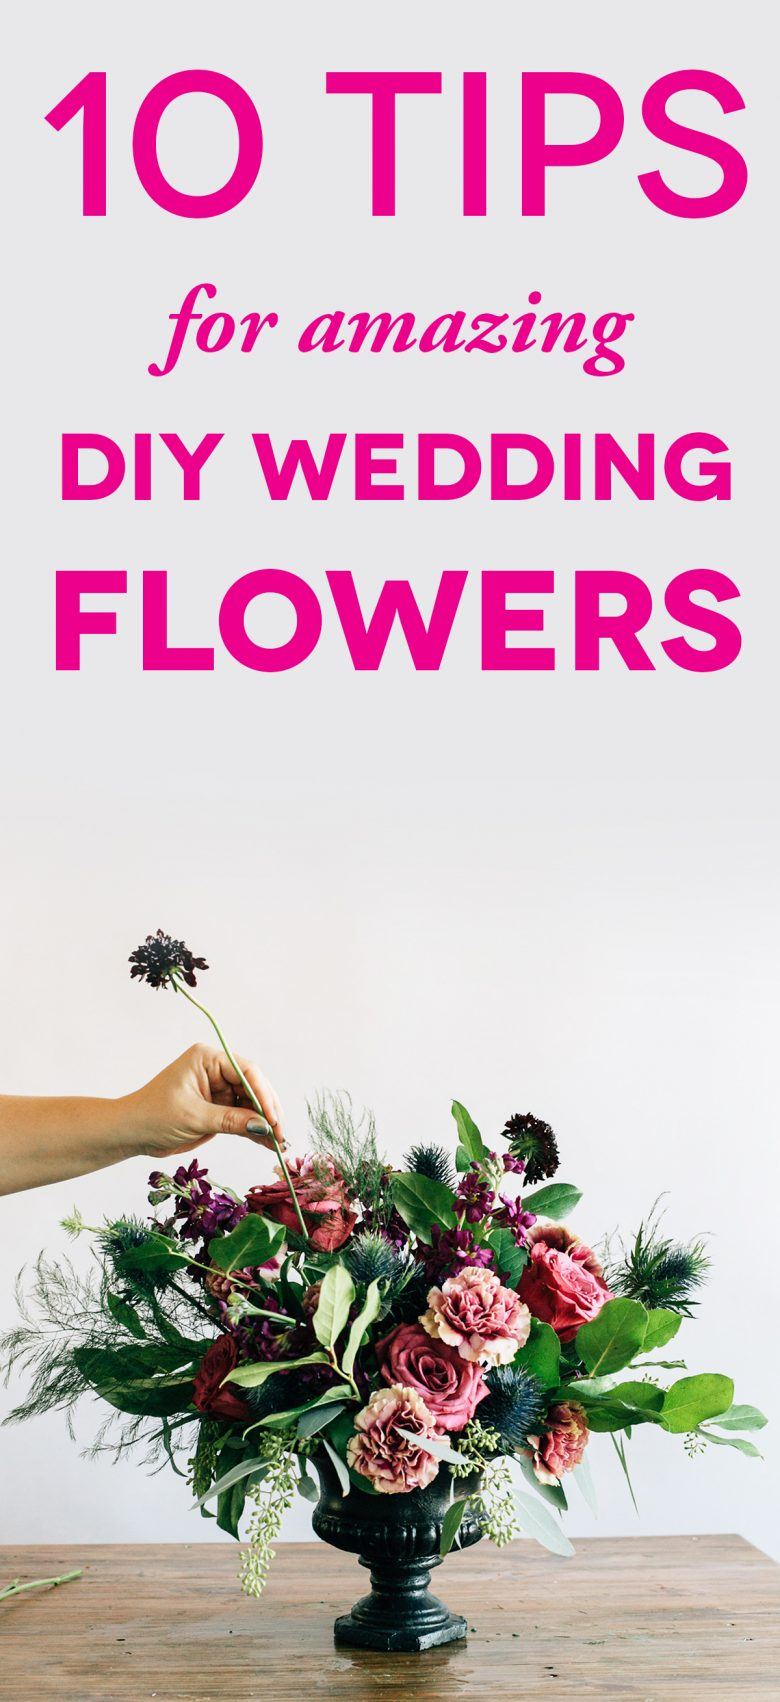 DIY Wedding Flowers 10 Simple Tips That Will Save You A